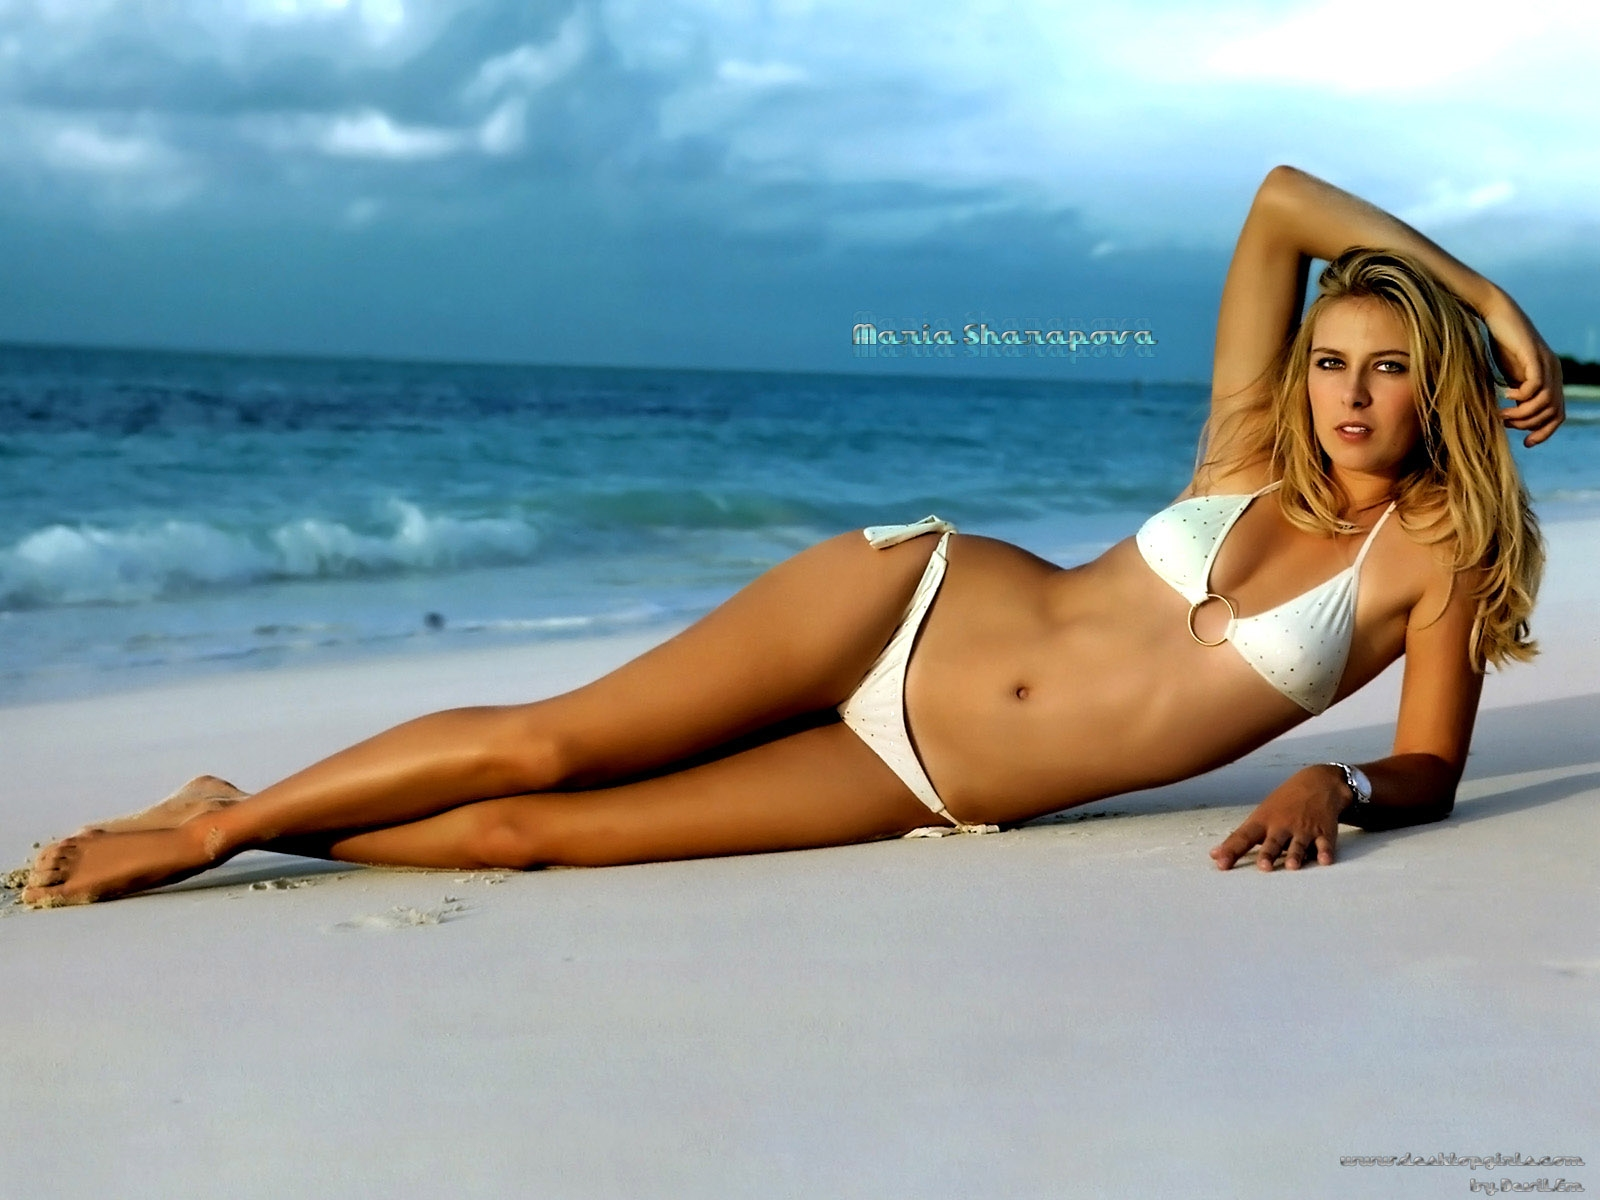 Tennis Beauty Maria Sharapova Hot Desktop Wallpaper 1920x1080